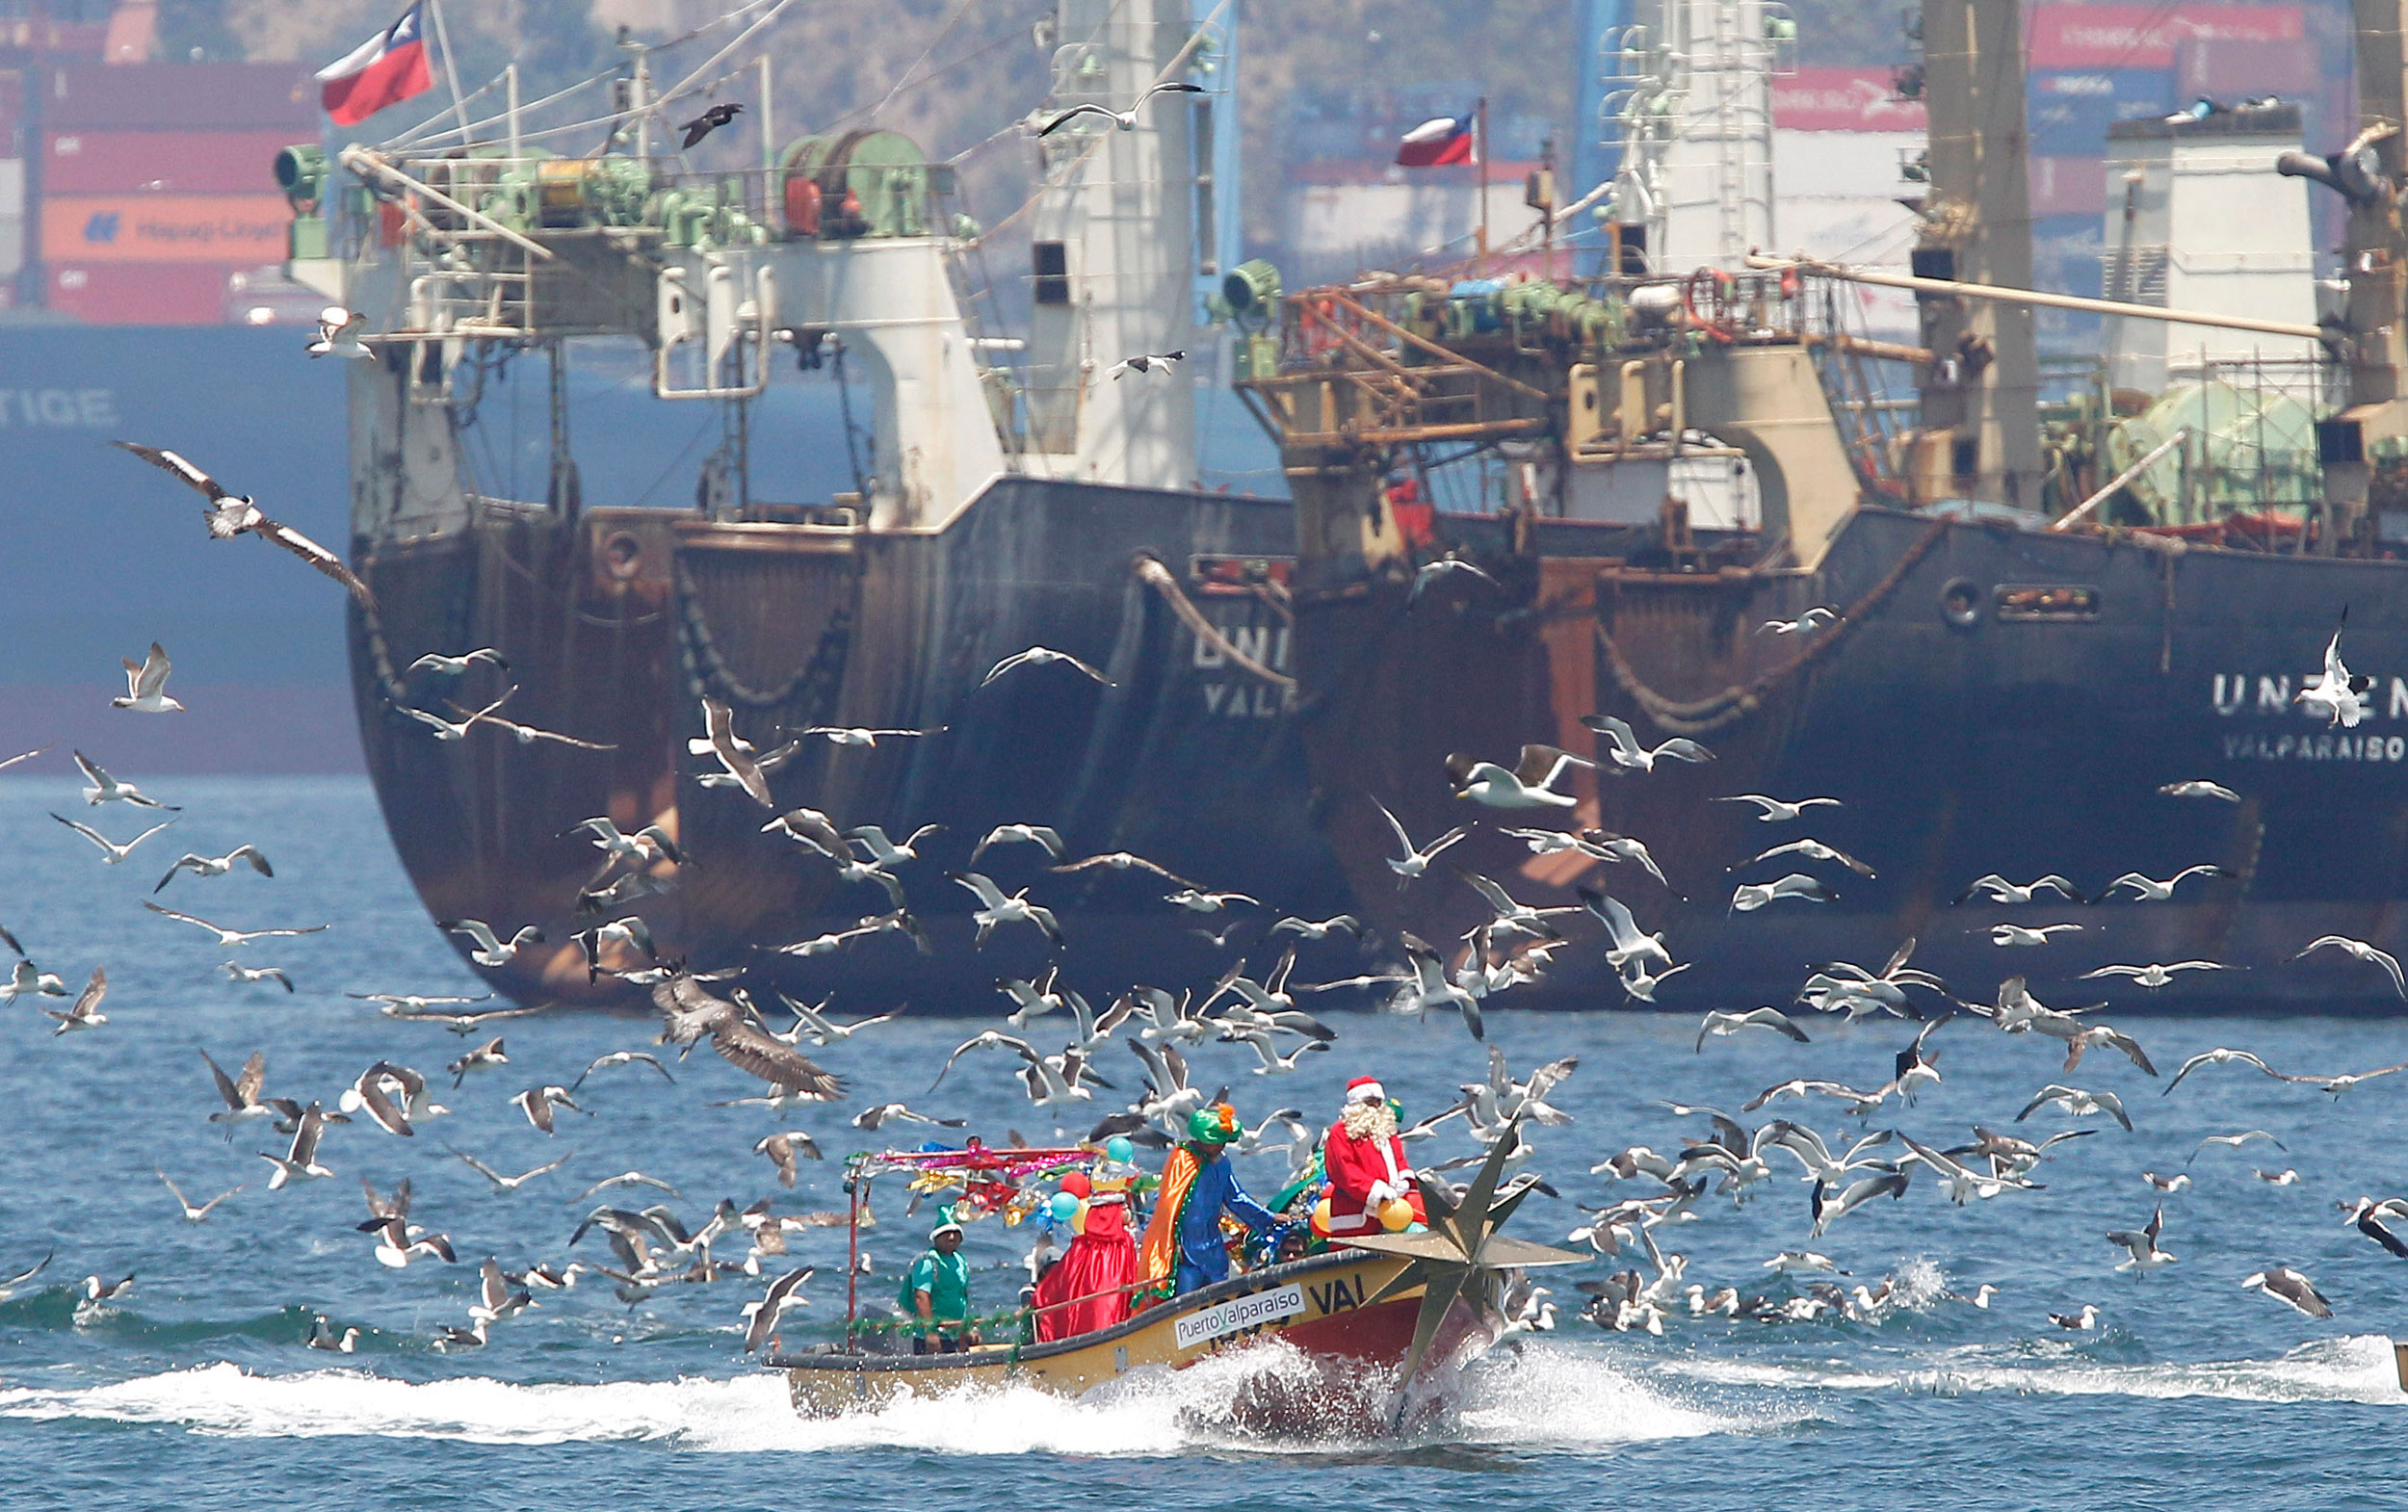 Ruben Torres, dressed in a Santa Claus outfit, and fishermen stand on a boat on Christmas Eve along the coast of Valparaiso city, northwest of Santiago on Dec. 24, 2014. Every year, the fishermen organize a Santa Claus boat trip as people wait on the shore to receive their Christmas presents and well-wishes.